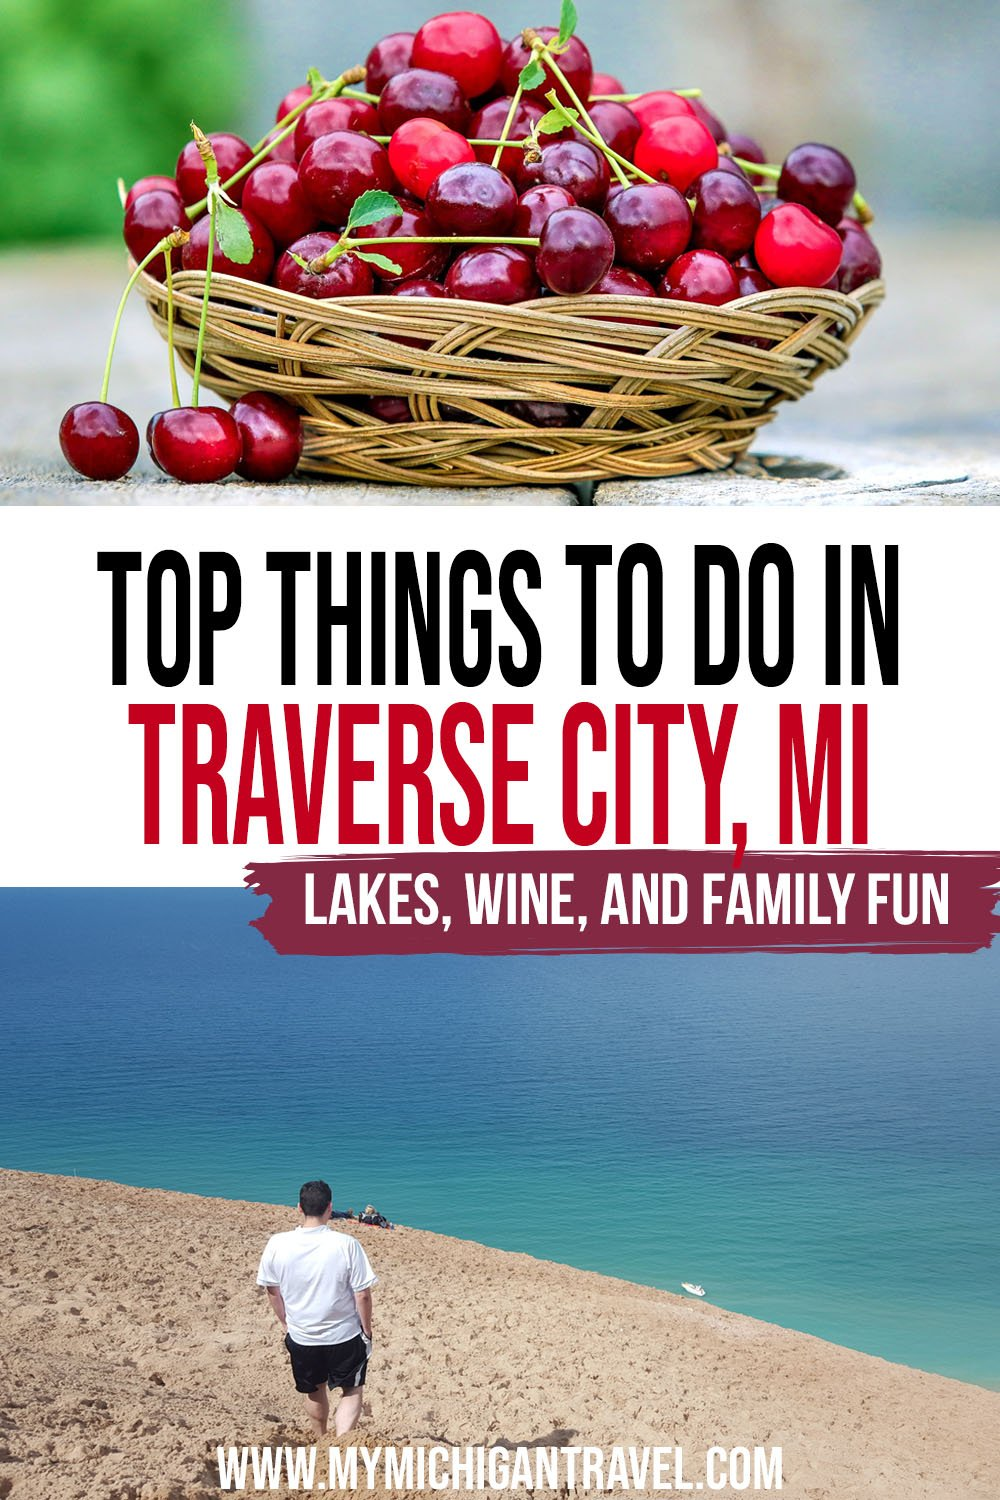 """Photo collage with images of a basket of ripe cherries and a man in a white tshirt walking down a steep sand dune toward turquoise waters with text overlay reading """"top things to do in Traverse City, MI - lakes, wine, and family fun"""""""